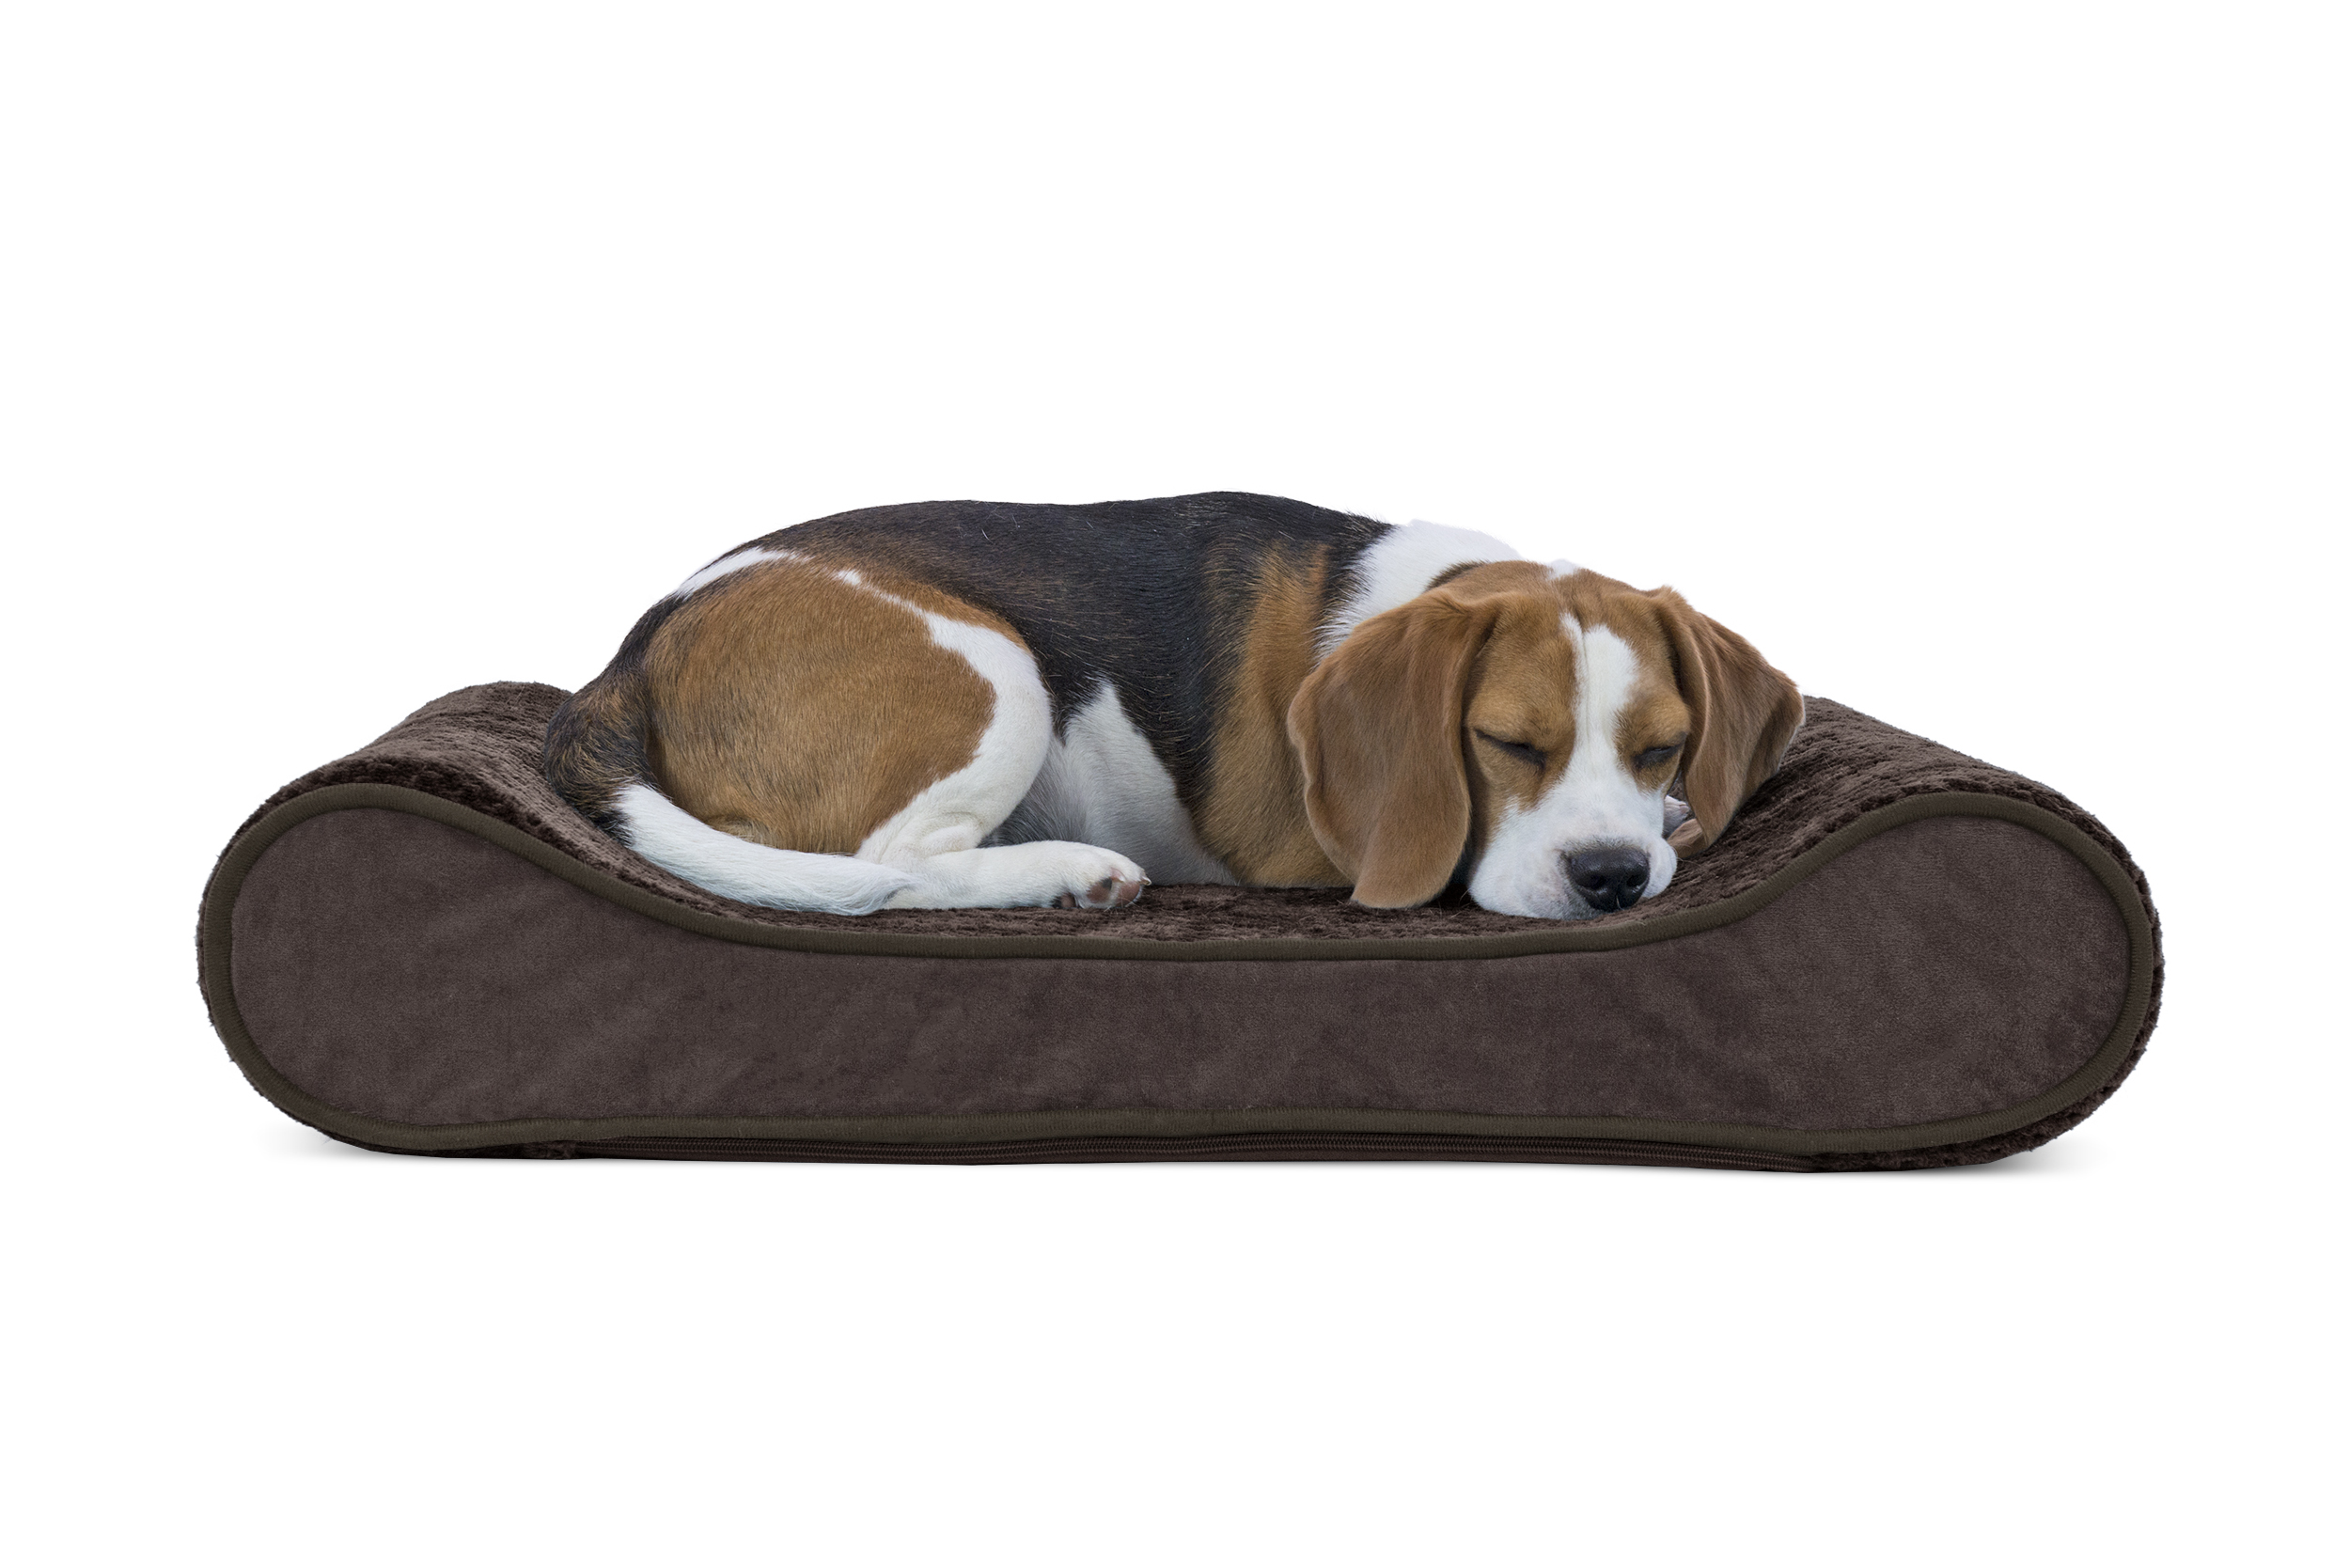 lounger petco life grey pillowtop beds for dog bedding bed shop center stages harmony en petcostore and category orthopedic all